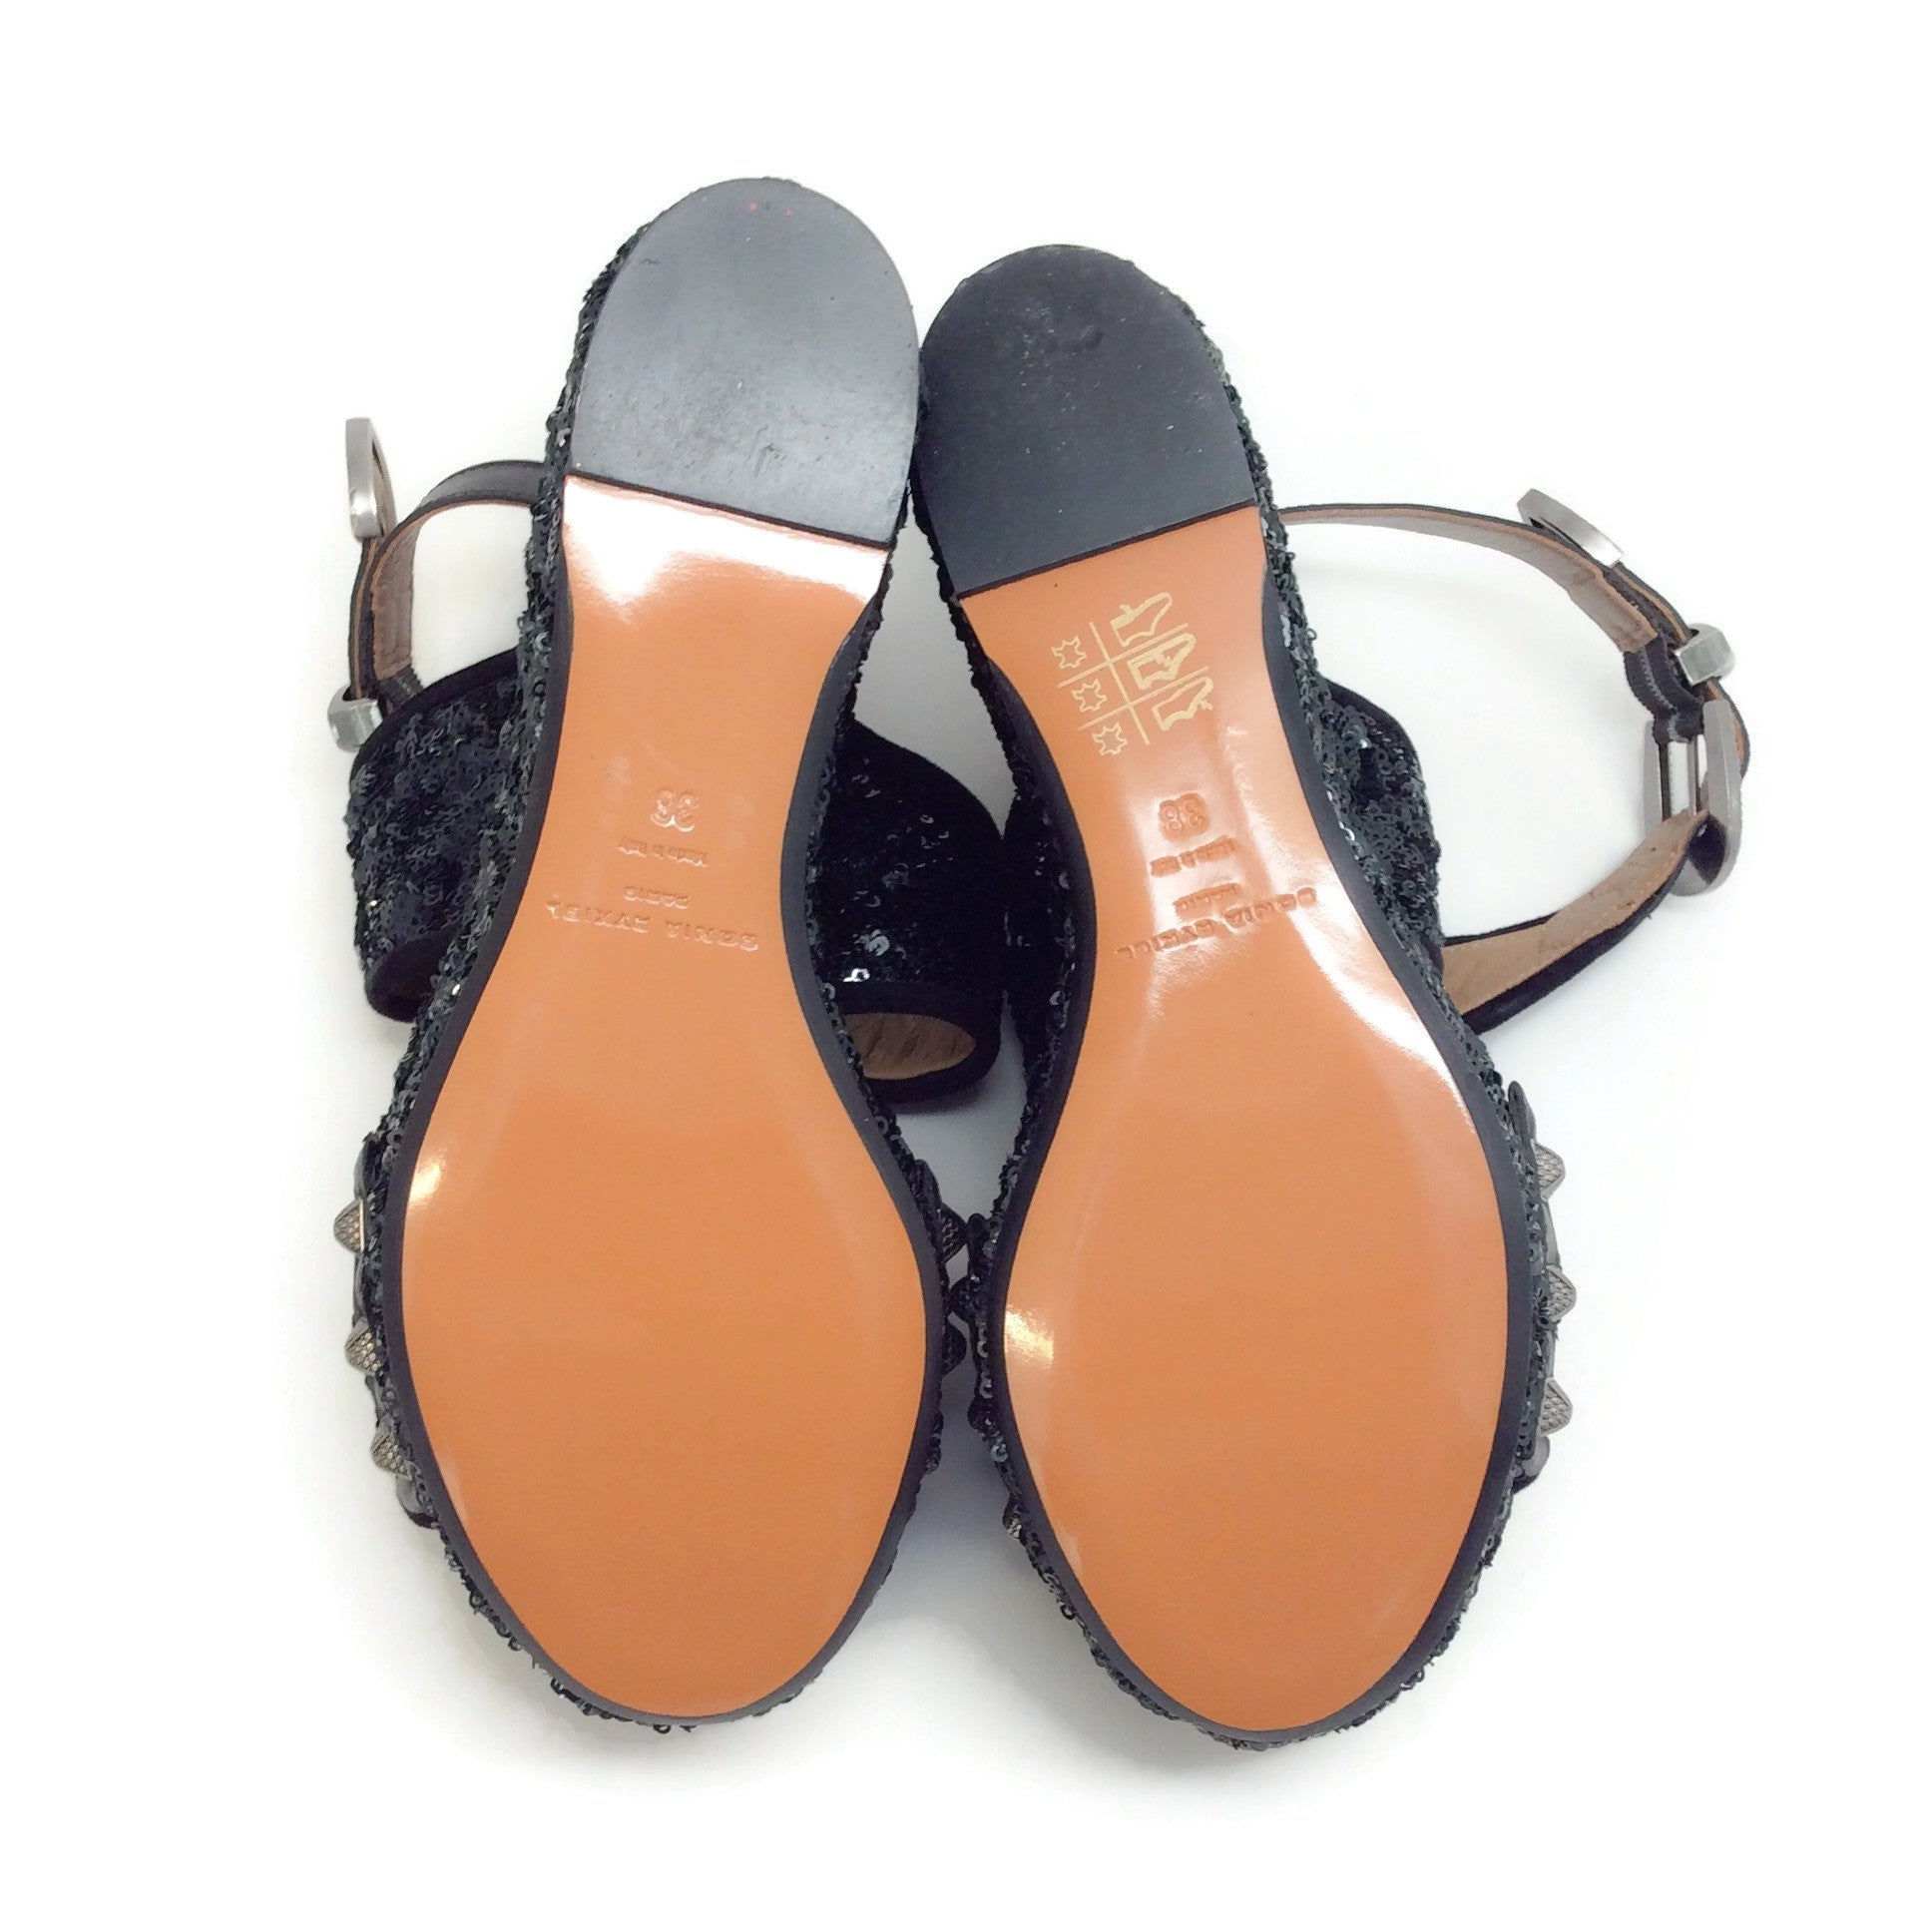 Sonia Rykiel Black Sequin Criss Cross Wedge Sandals